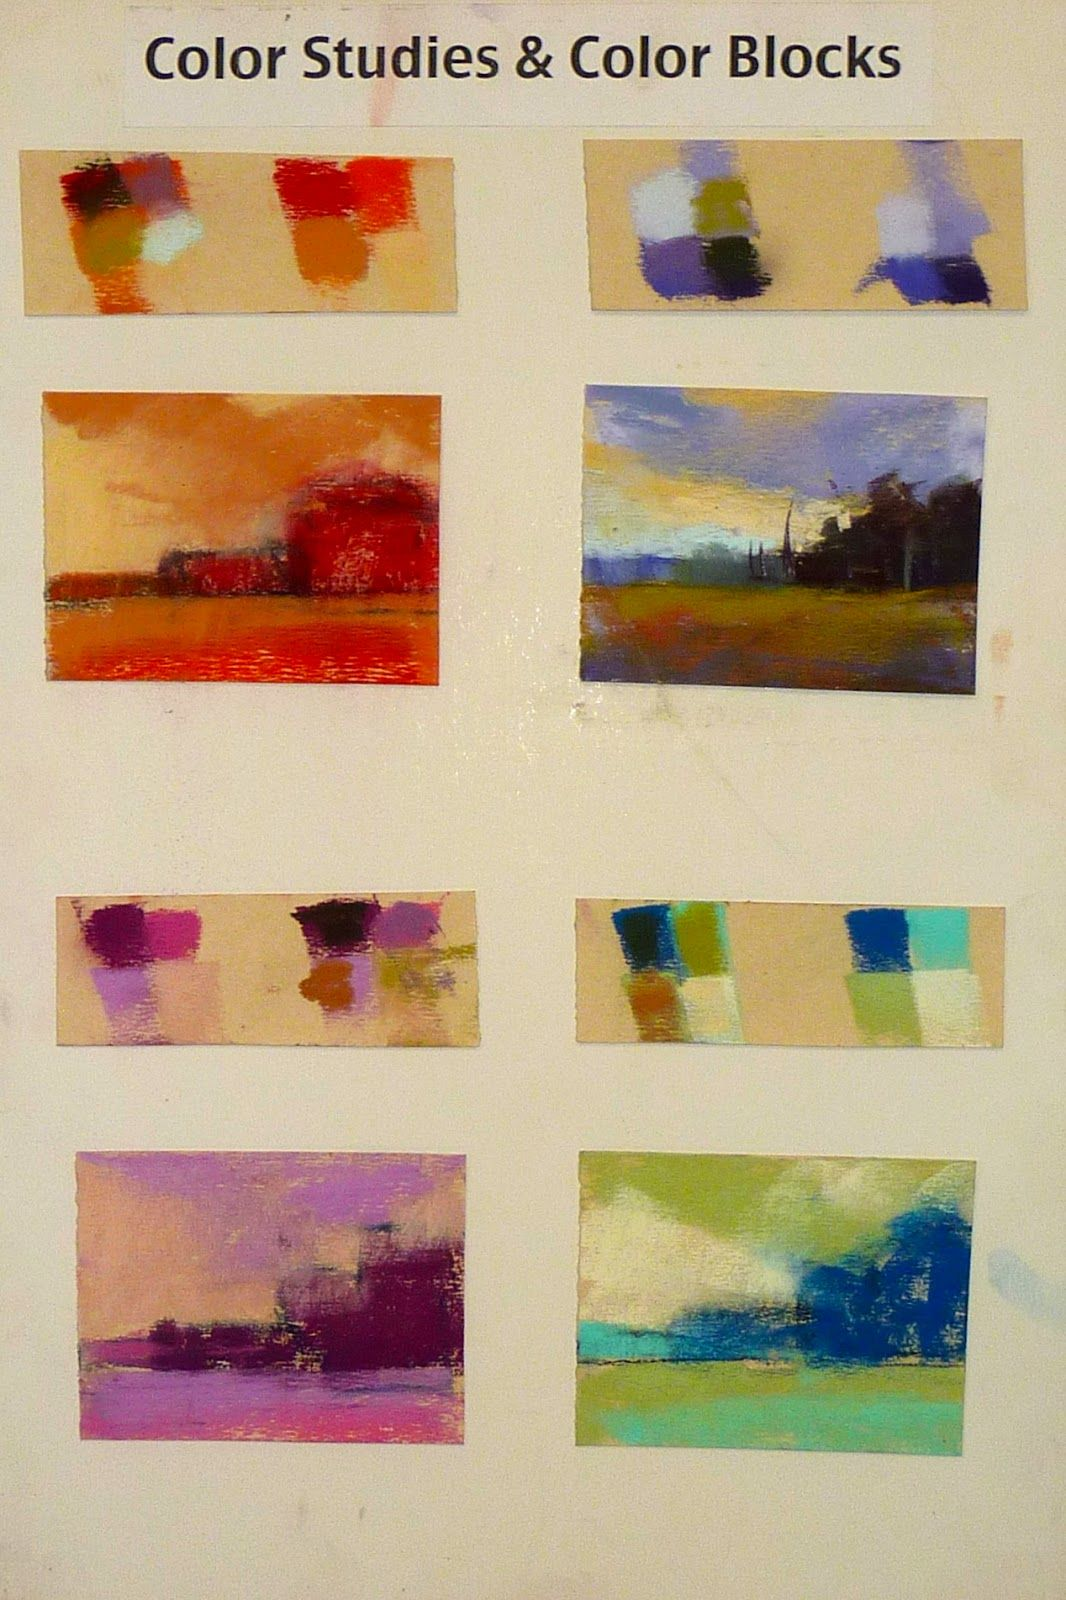 Painting My World: Creating a Mood with Underpainting Colors